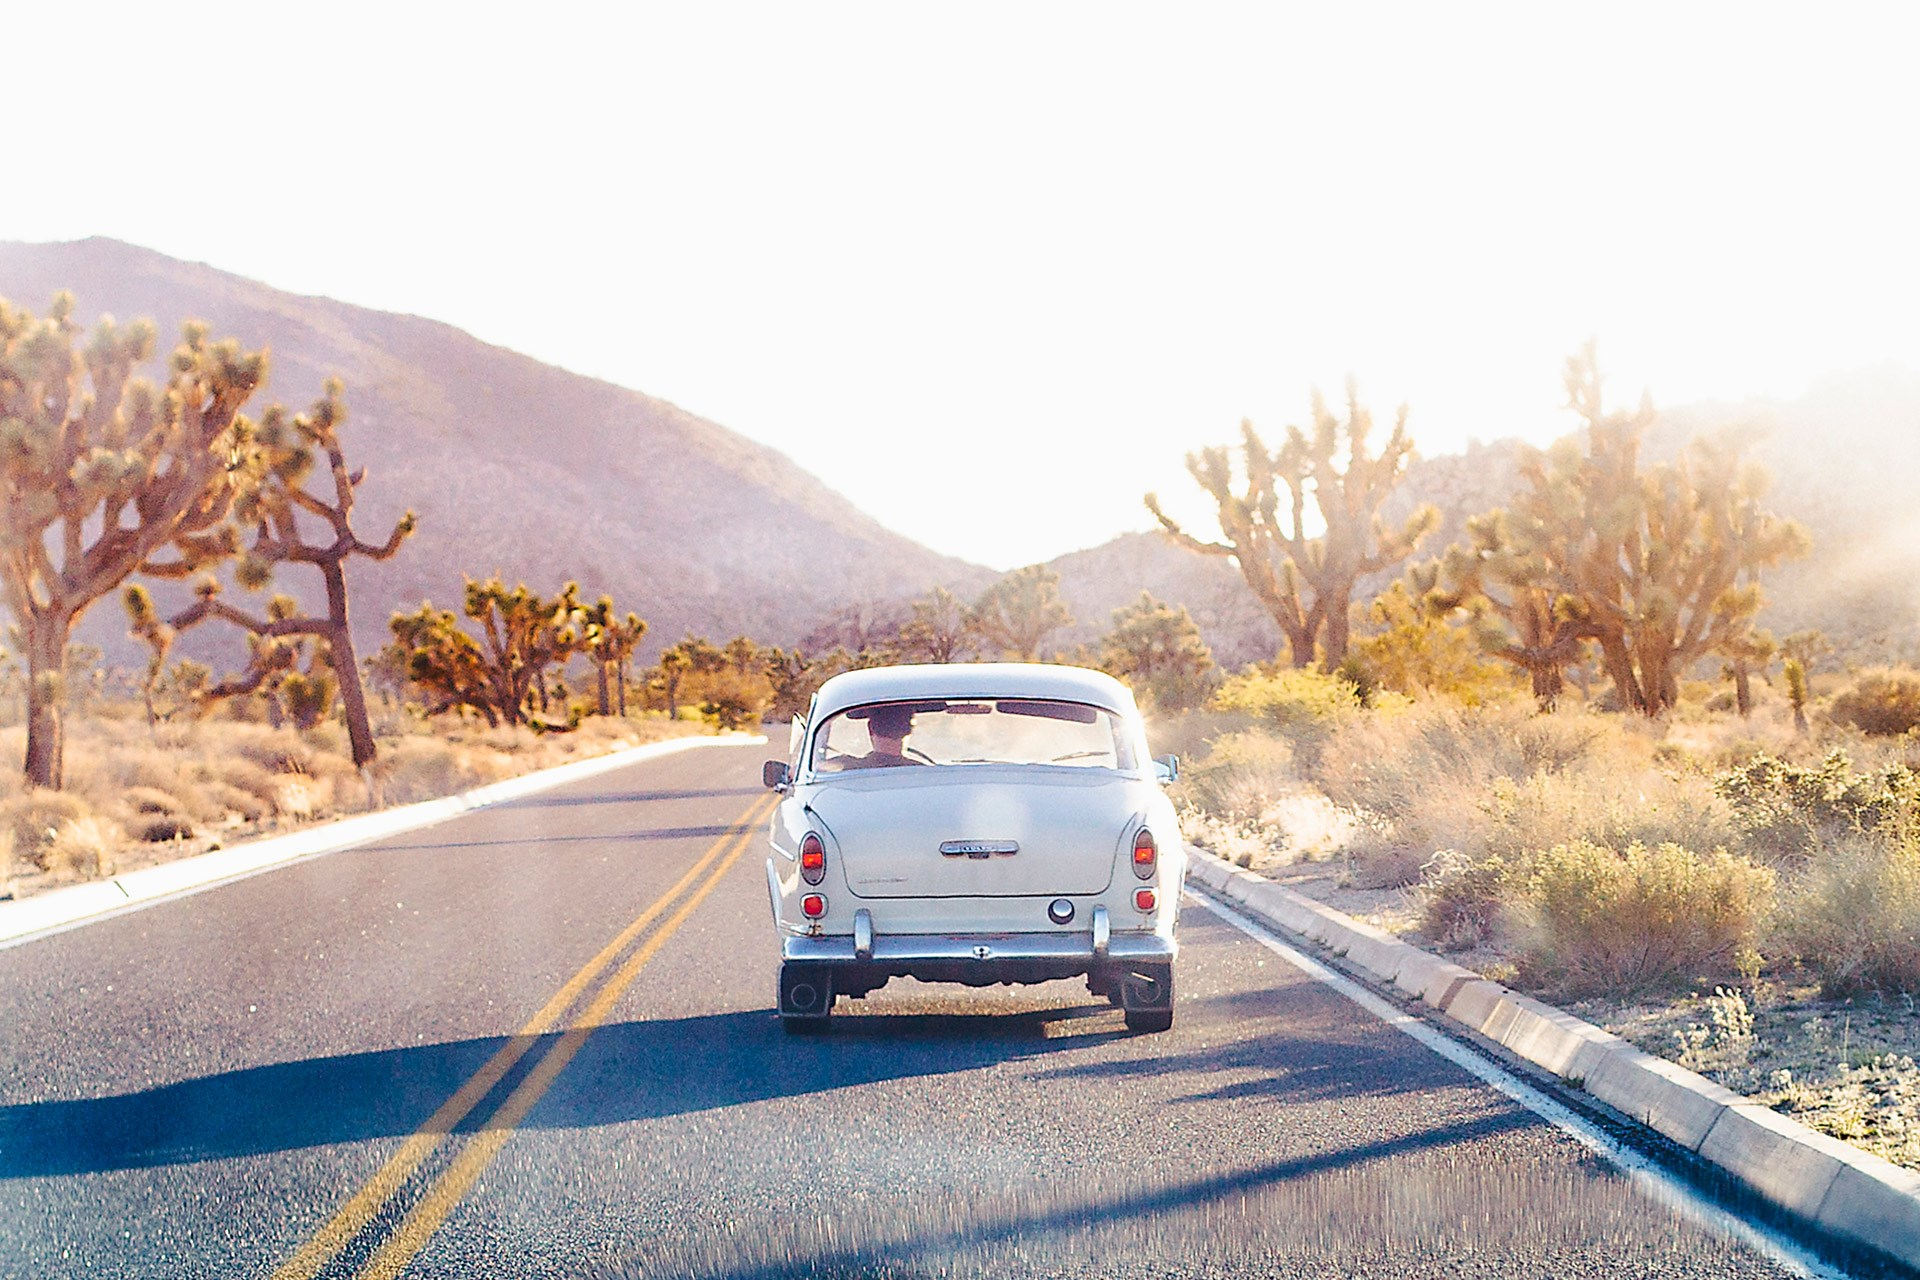 Solo travel roadtrip california empty road vintage car sun and freedom truly bespoke